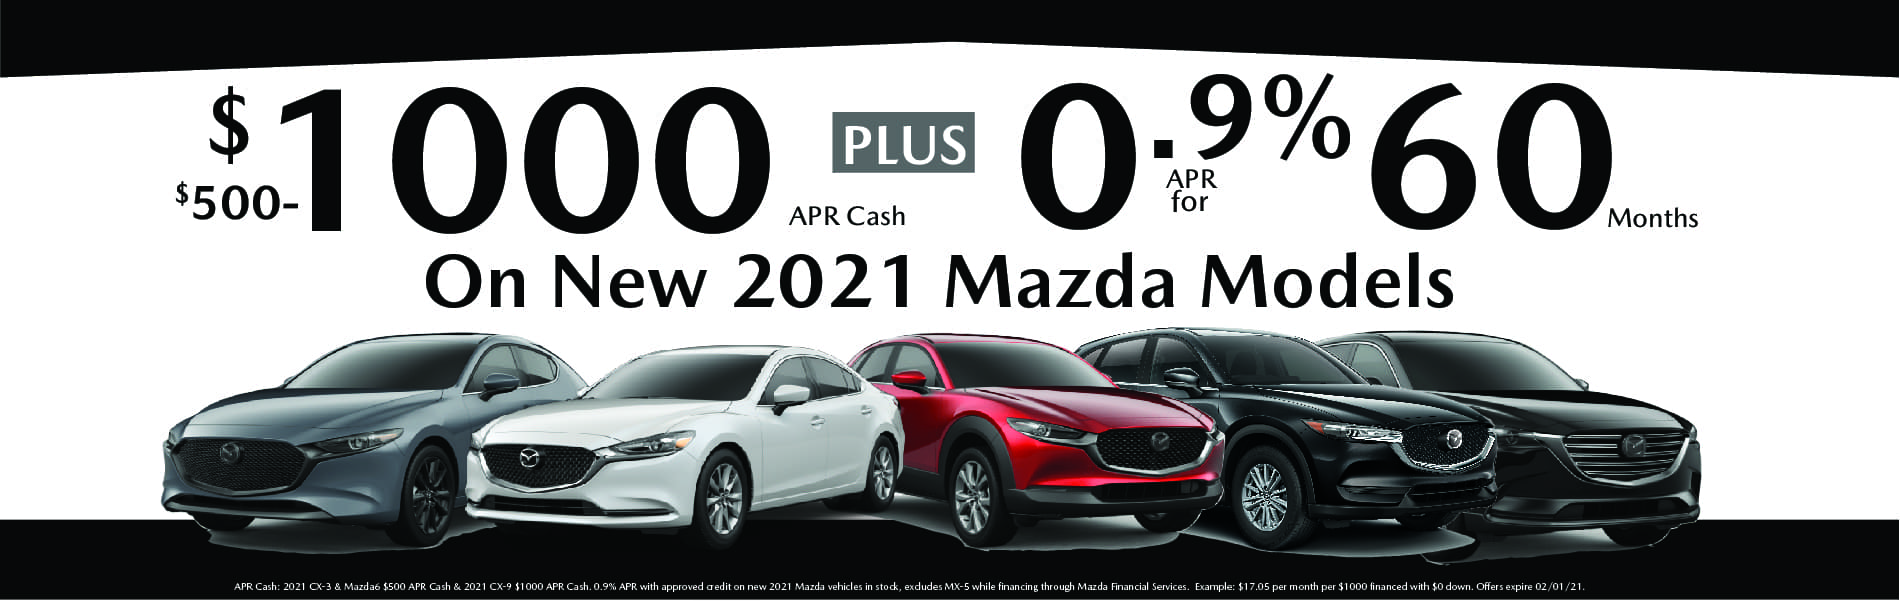 New Vehicle Special APR